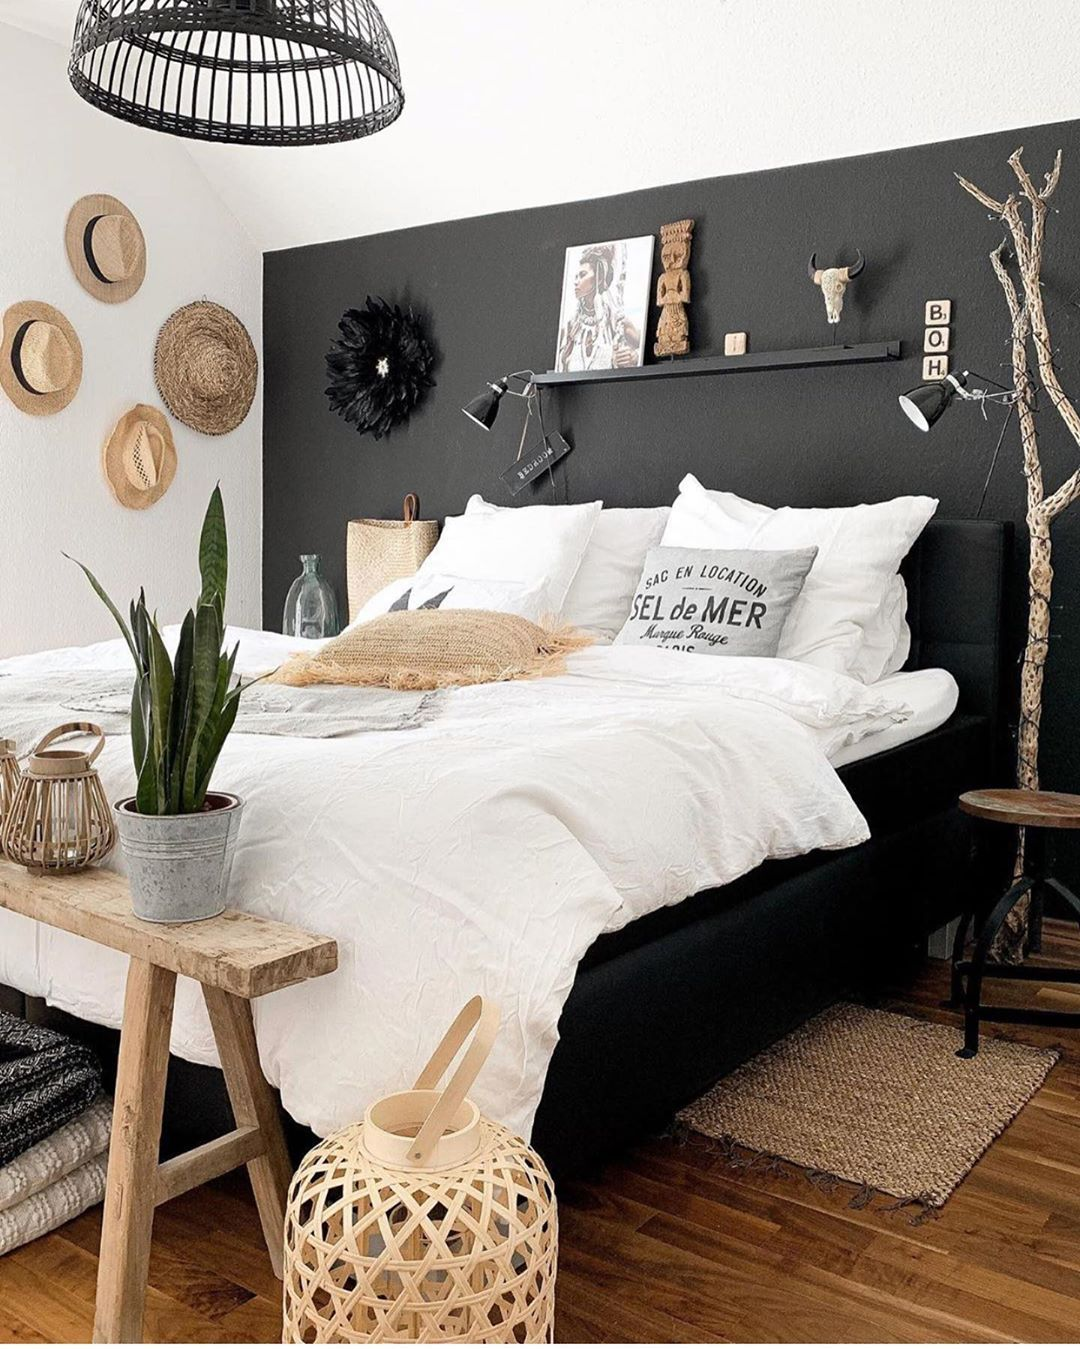 "Inspi_Deco on Instagram: ""️ Adult Room � Inspi @mikaswohnsinn #instagood #instalike #likephoto #picoftheday #room #roomdecor #adultroom #bedroom #bedroomdecor…"""